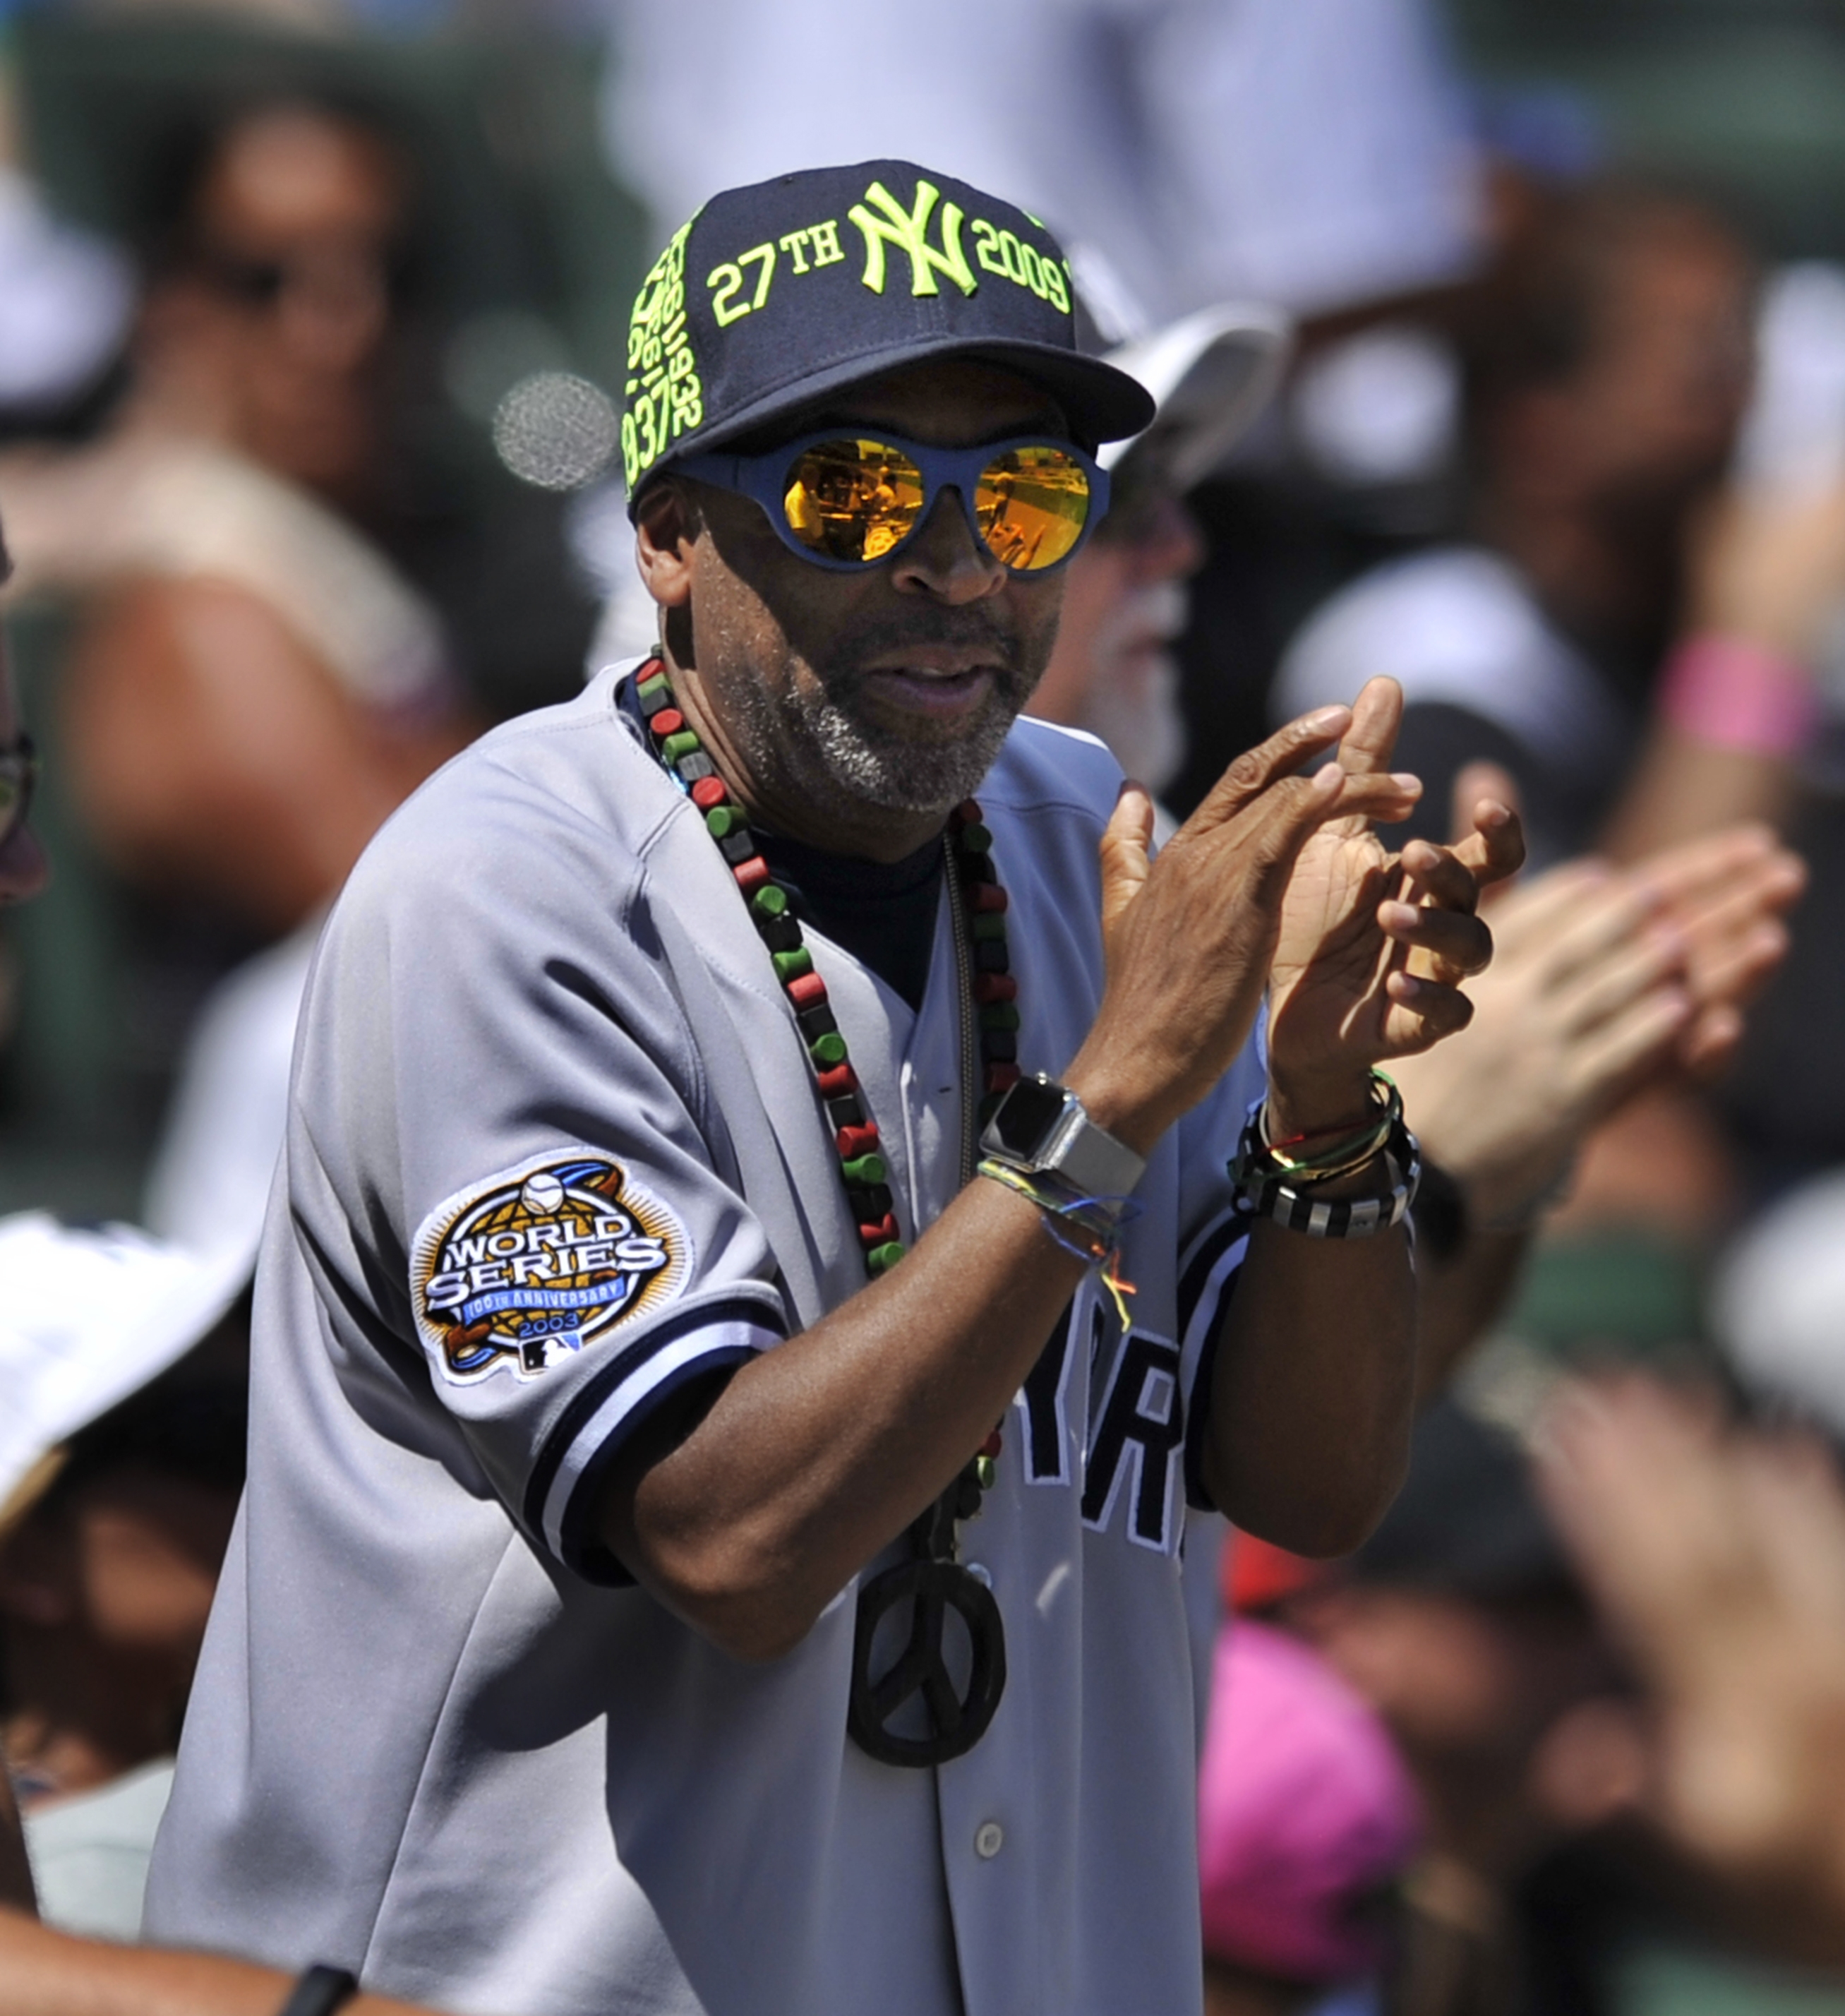 Director Spike Lee celebrates after New York Yankees' Brian McCann and Carlos Beltran scored on a Didi Gregorius single during the fourth inning of a baseball game against the Chicago White Sox, Sunday, Aug 2, 2015, in Chicago. (AP Photo/Paul Beaty)